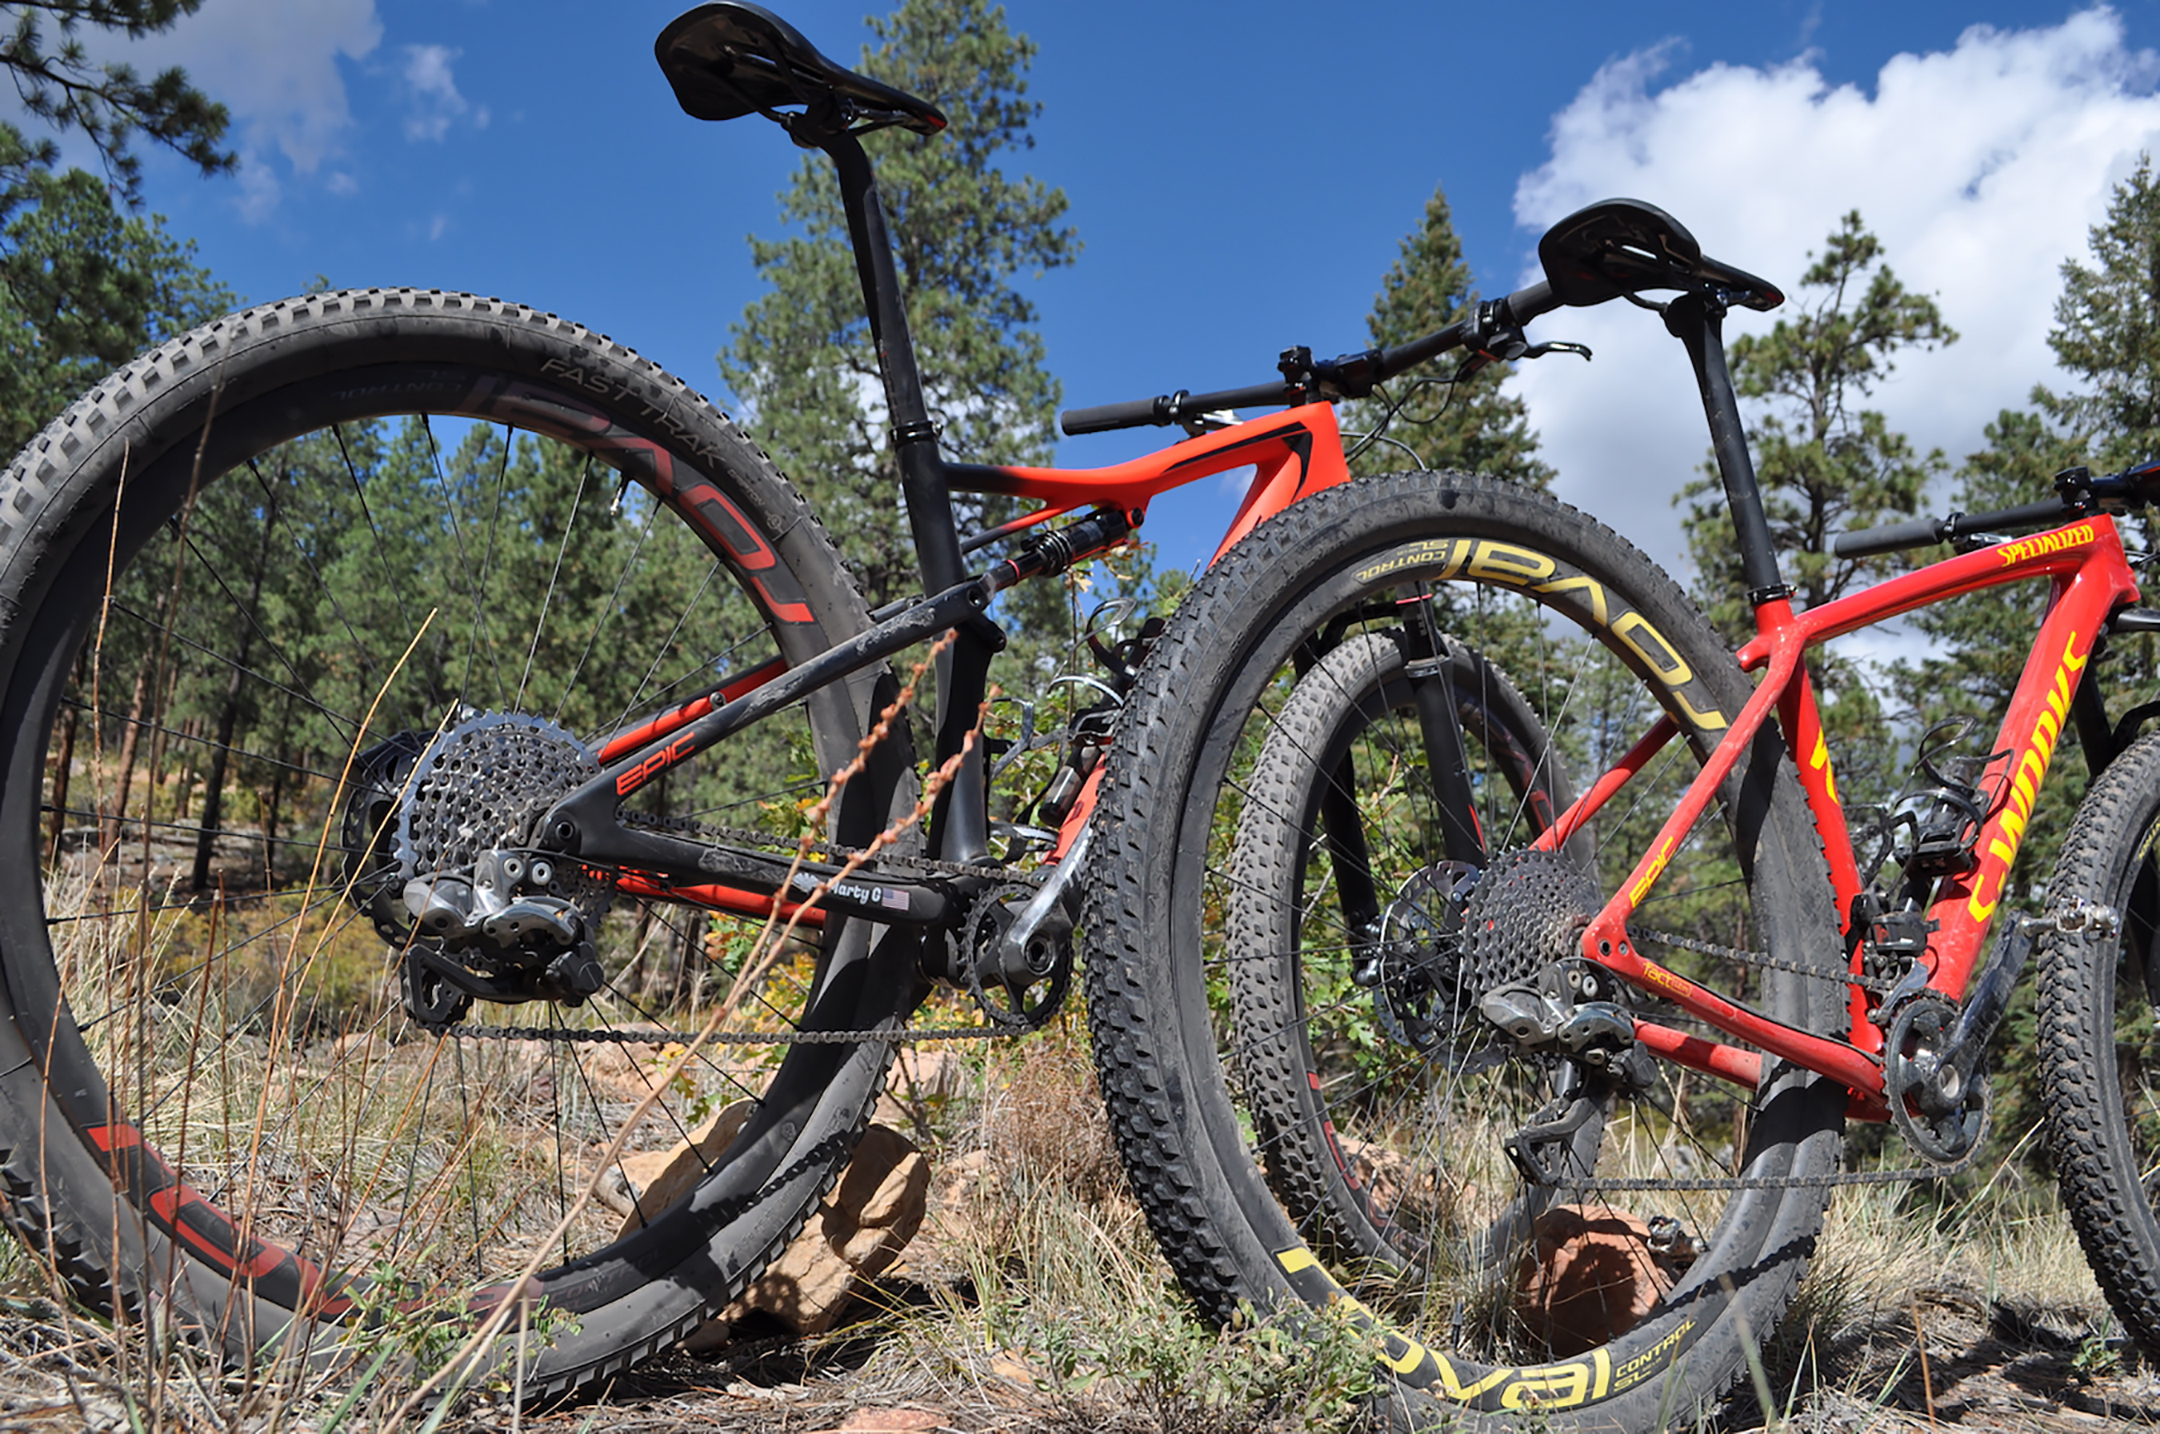 f320c27b86e1 Hardtail vs. Full-Suspension: Mountain Bike Smackdown | GearJunkie